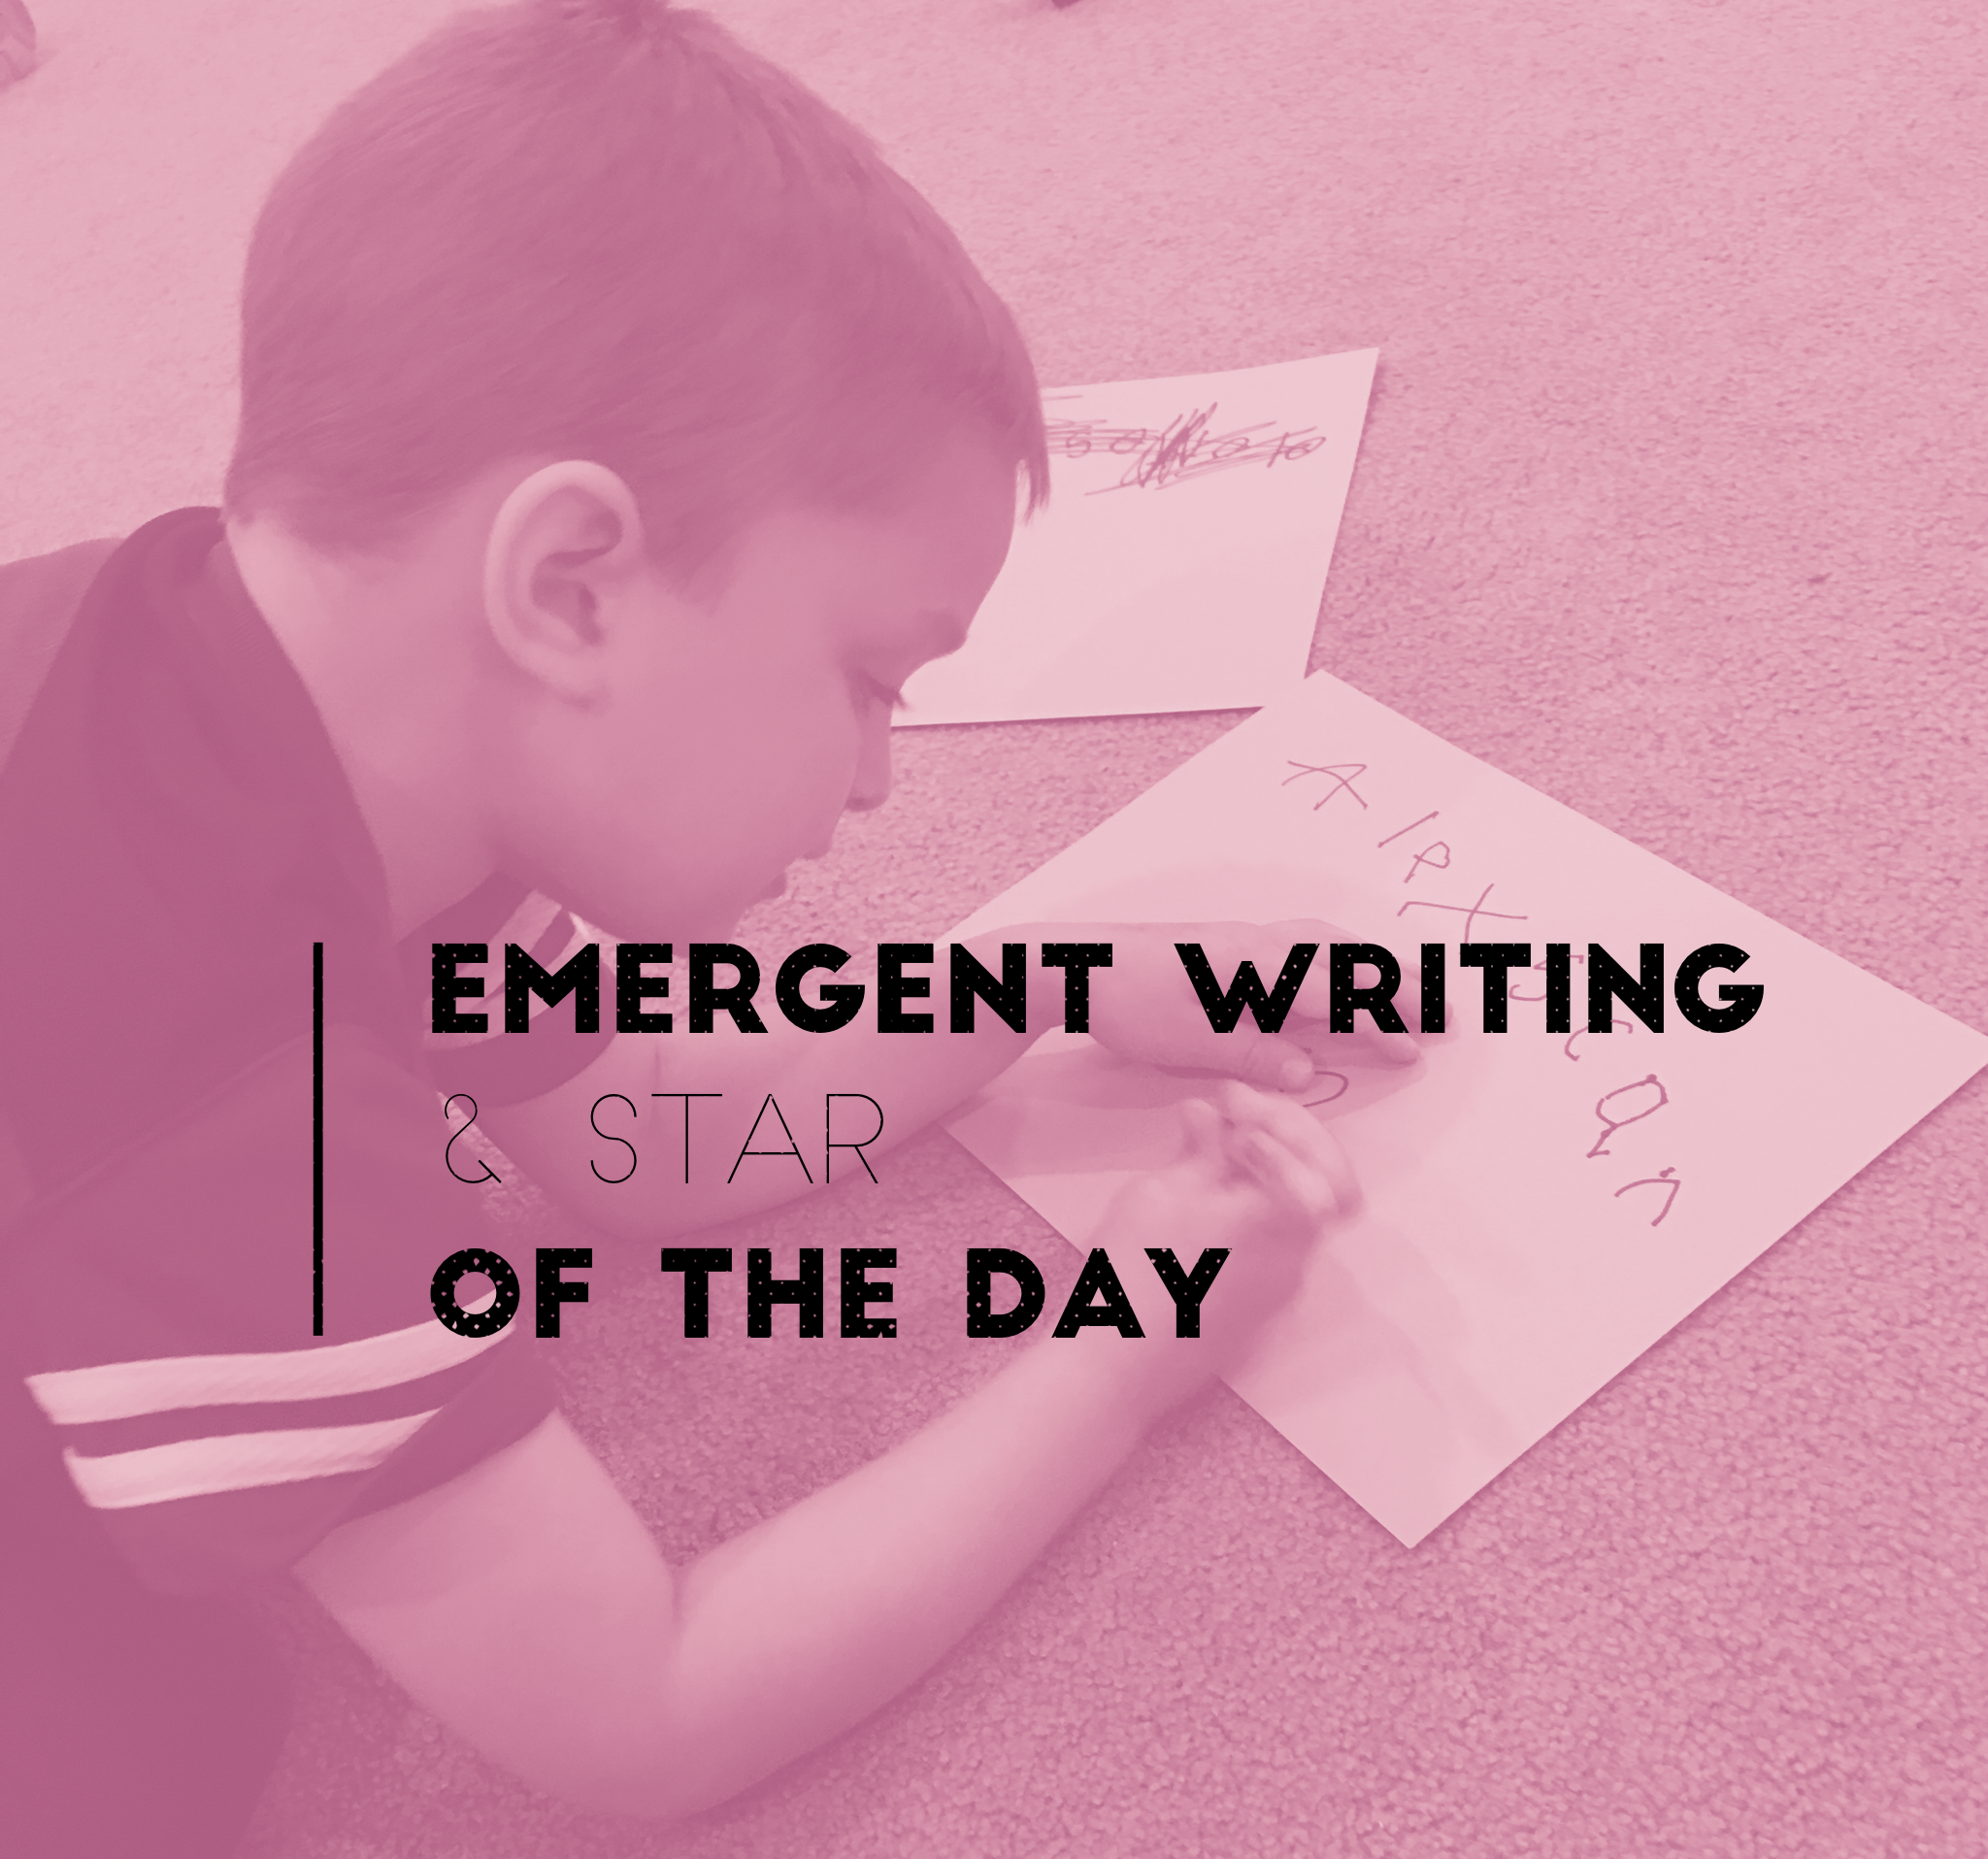 emergent writing The purpose of this study was to concurrently examine the development of written language across several writing tasks and to investigate how writing features develop in preschool children emergent written language knowledge of 372 preschoolers was assessed using numerous writing tasks the.